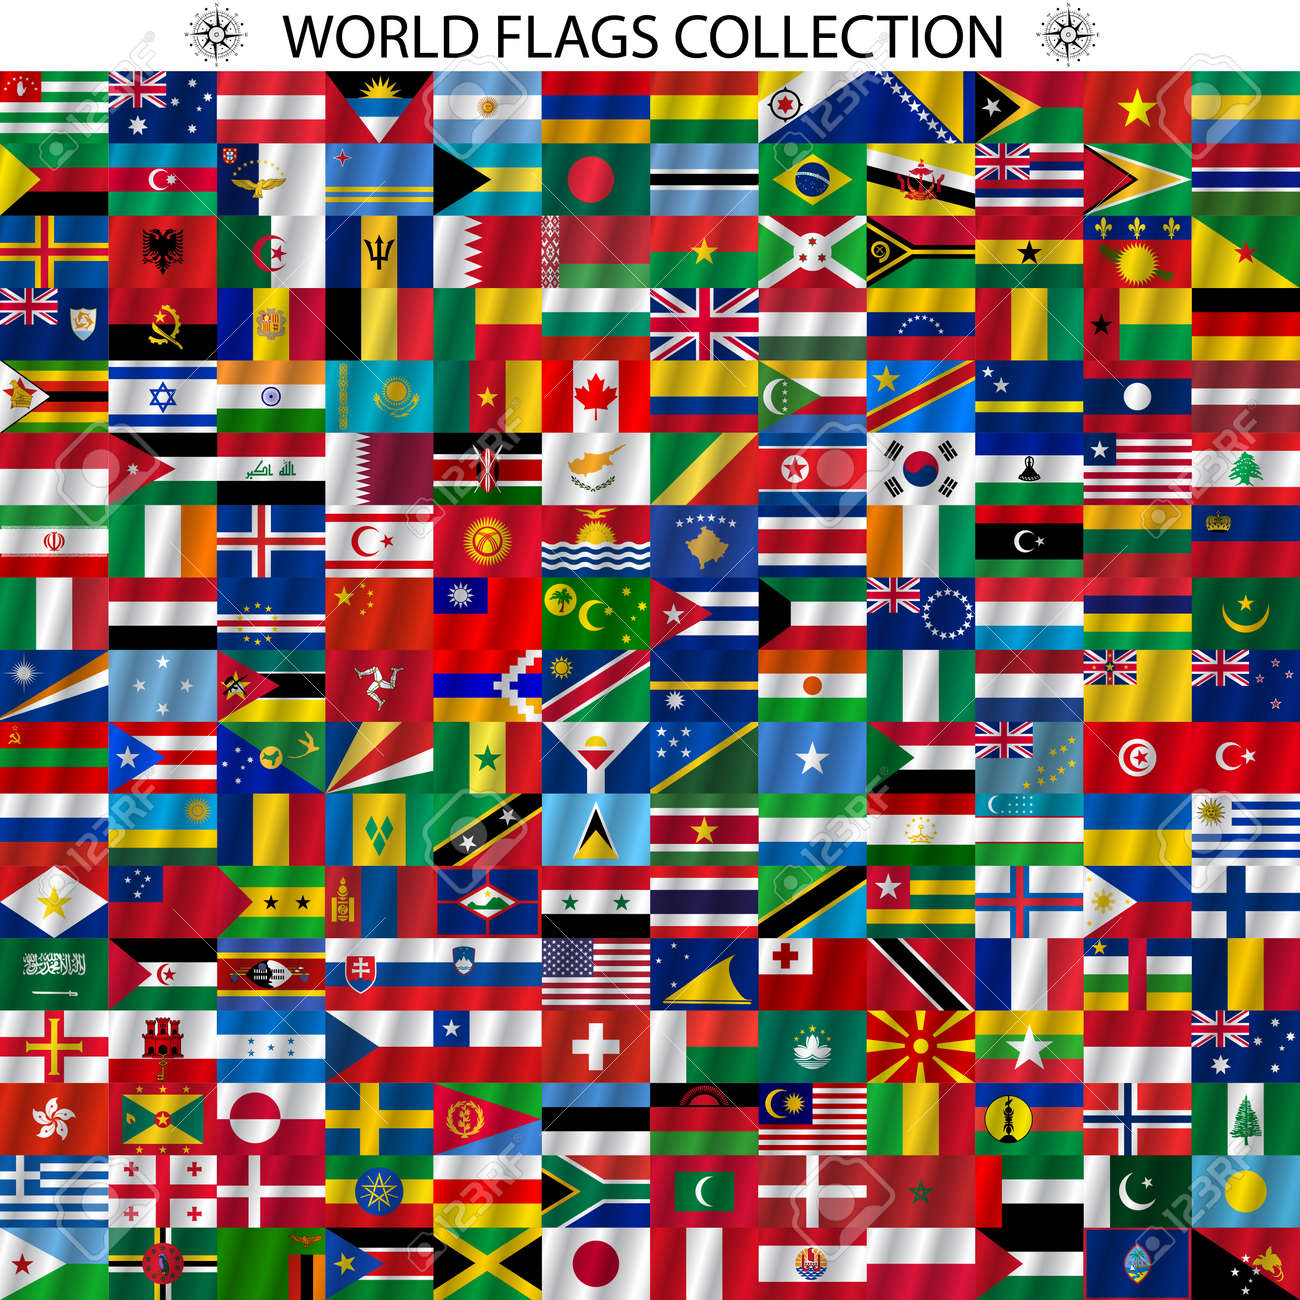 Flags of the world and map on white background. Vector illustration. - 36779151